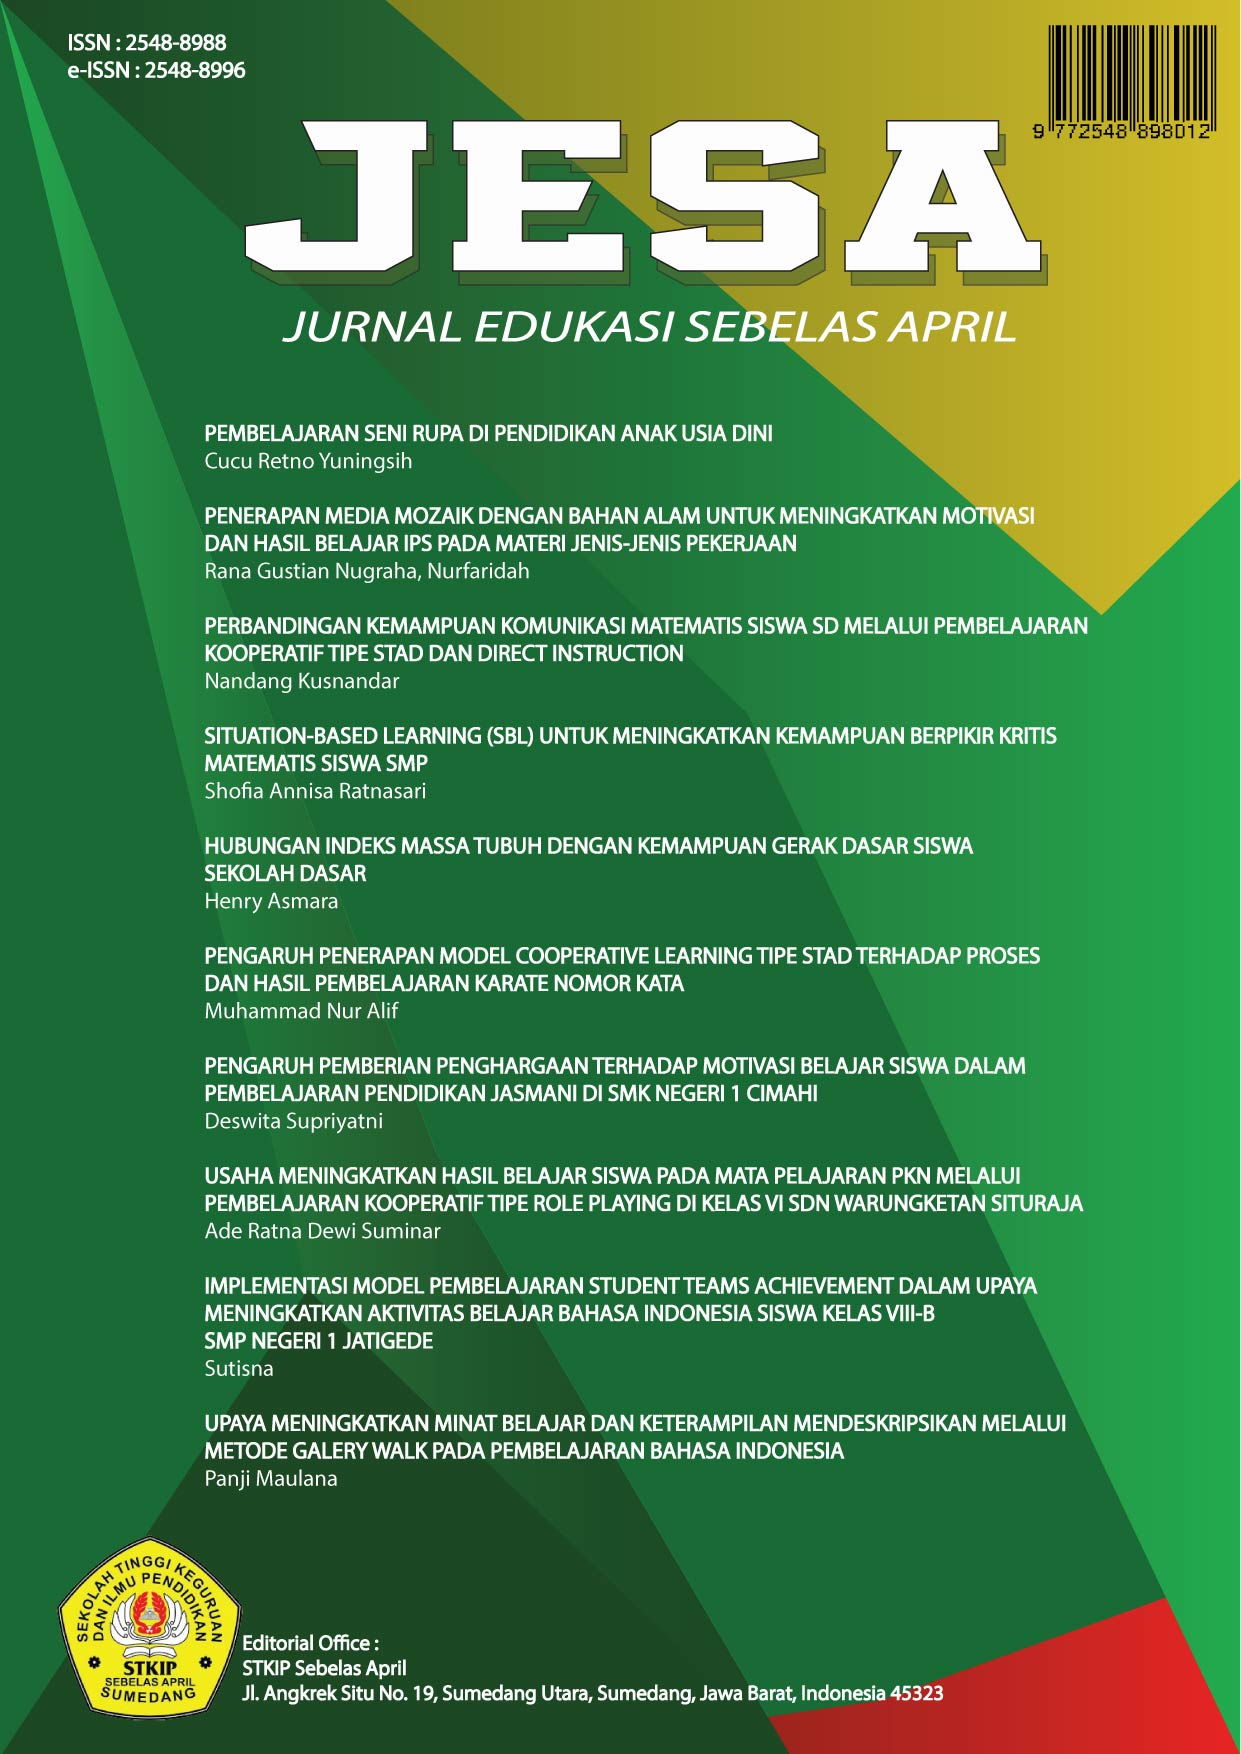 Jurnal Edukasi Sebelas April